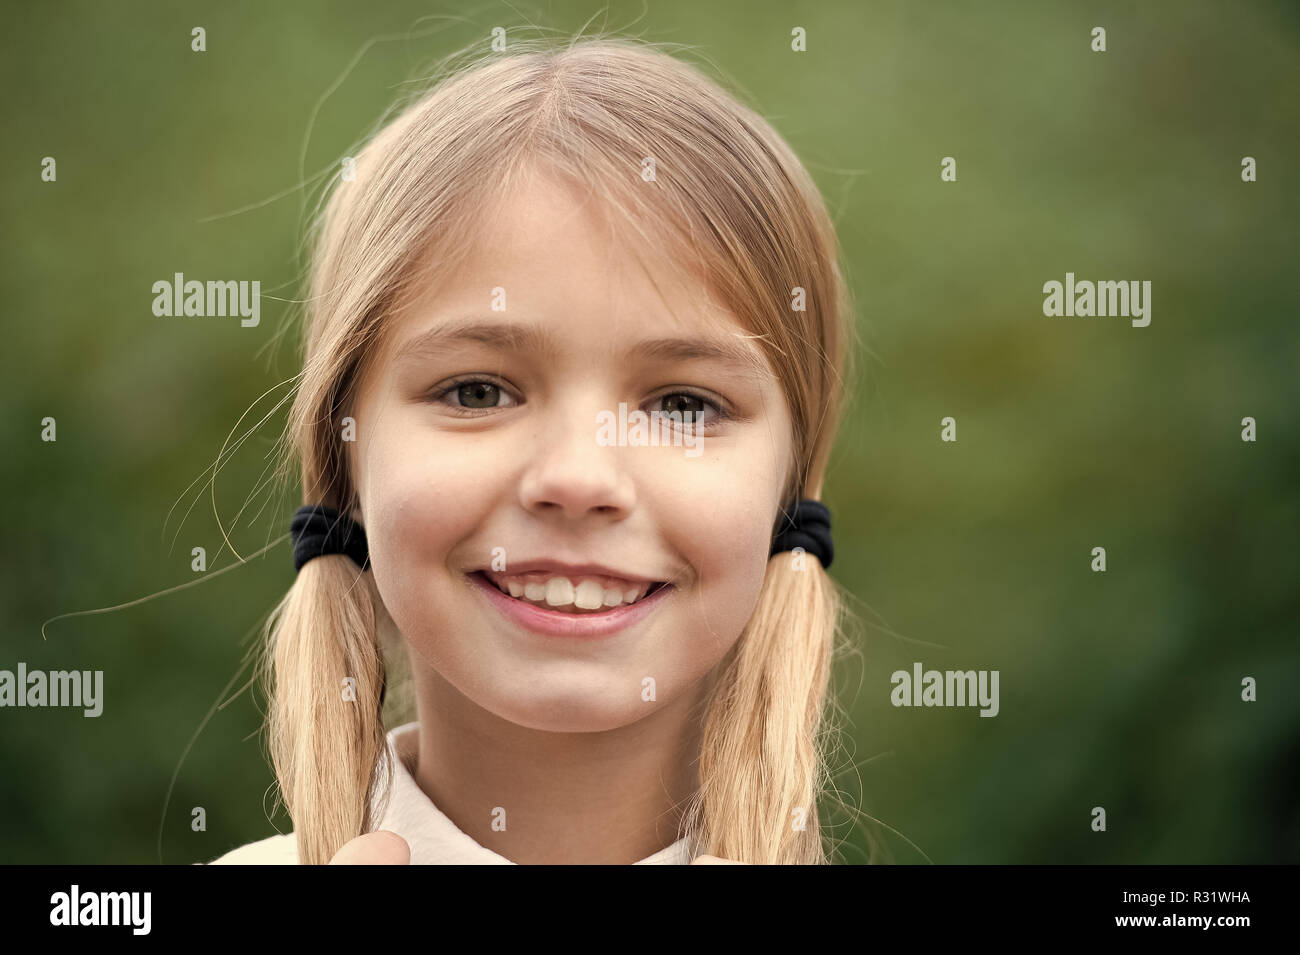 Girl happy smile with blond hair ponytails on natural environment. Child beauty, look, hairstyle concept. - Stock Image